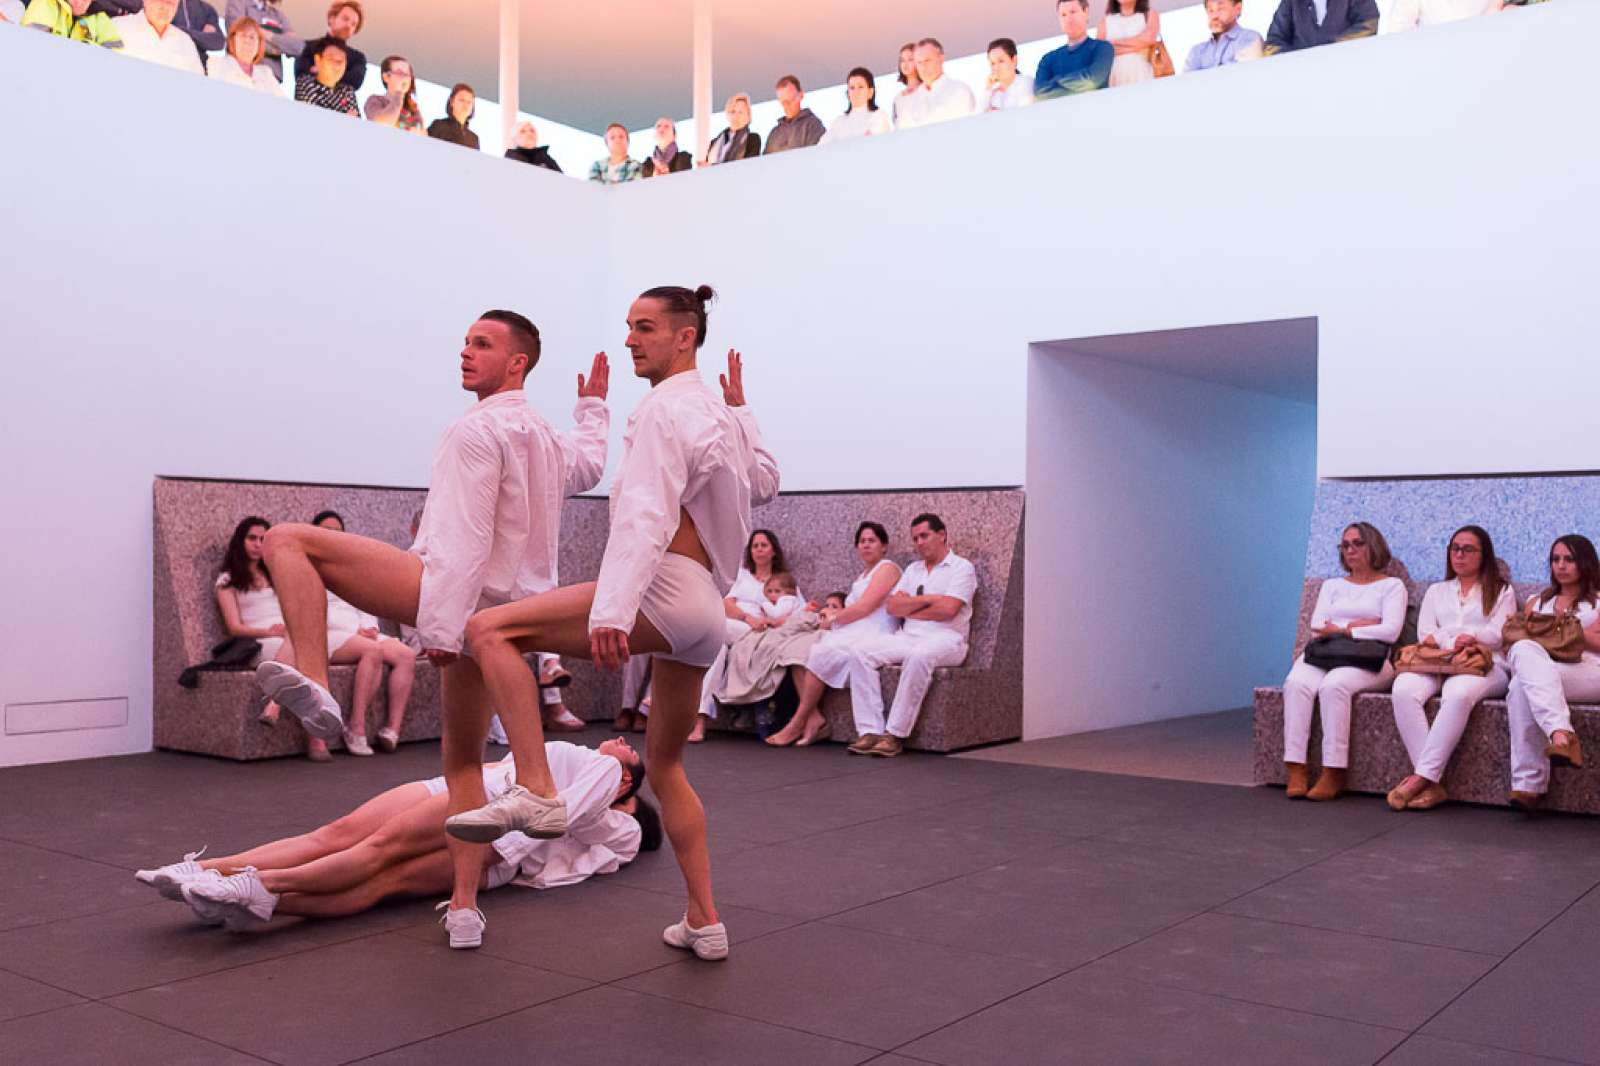 Dancers of Dušan Týnek Dance Theatre perform Vespertine Awakenings at the James Turrell Twilight Epiphany Skyspace